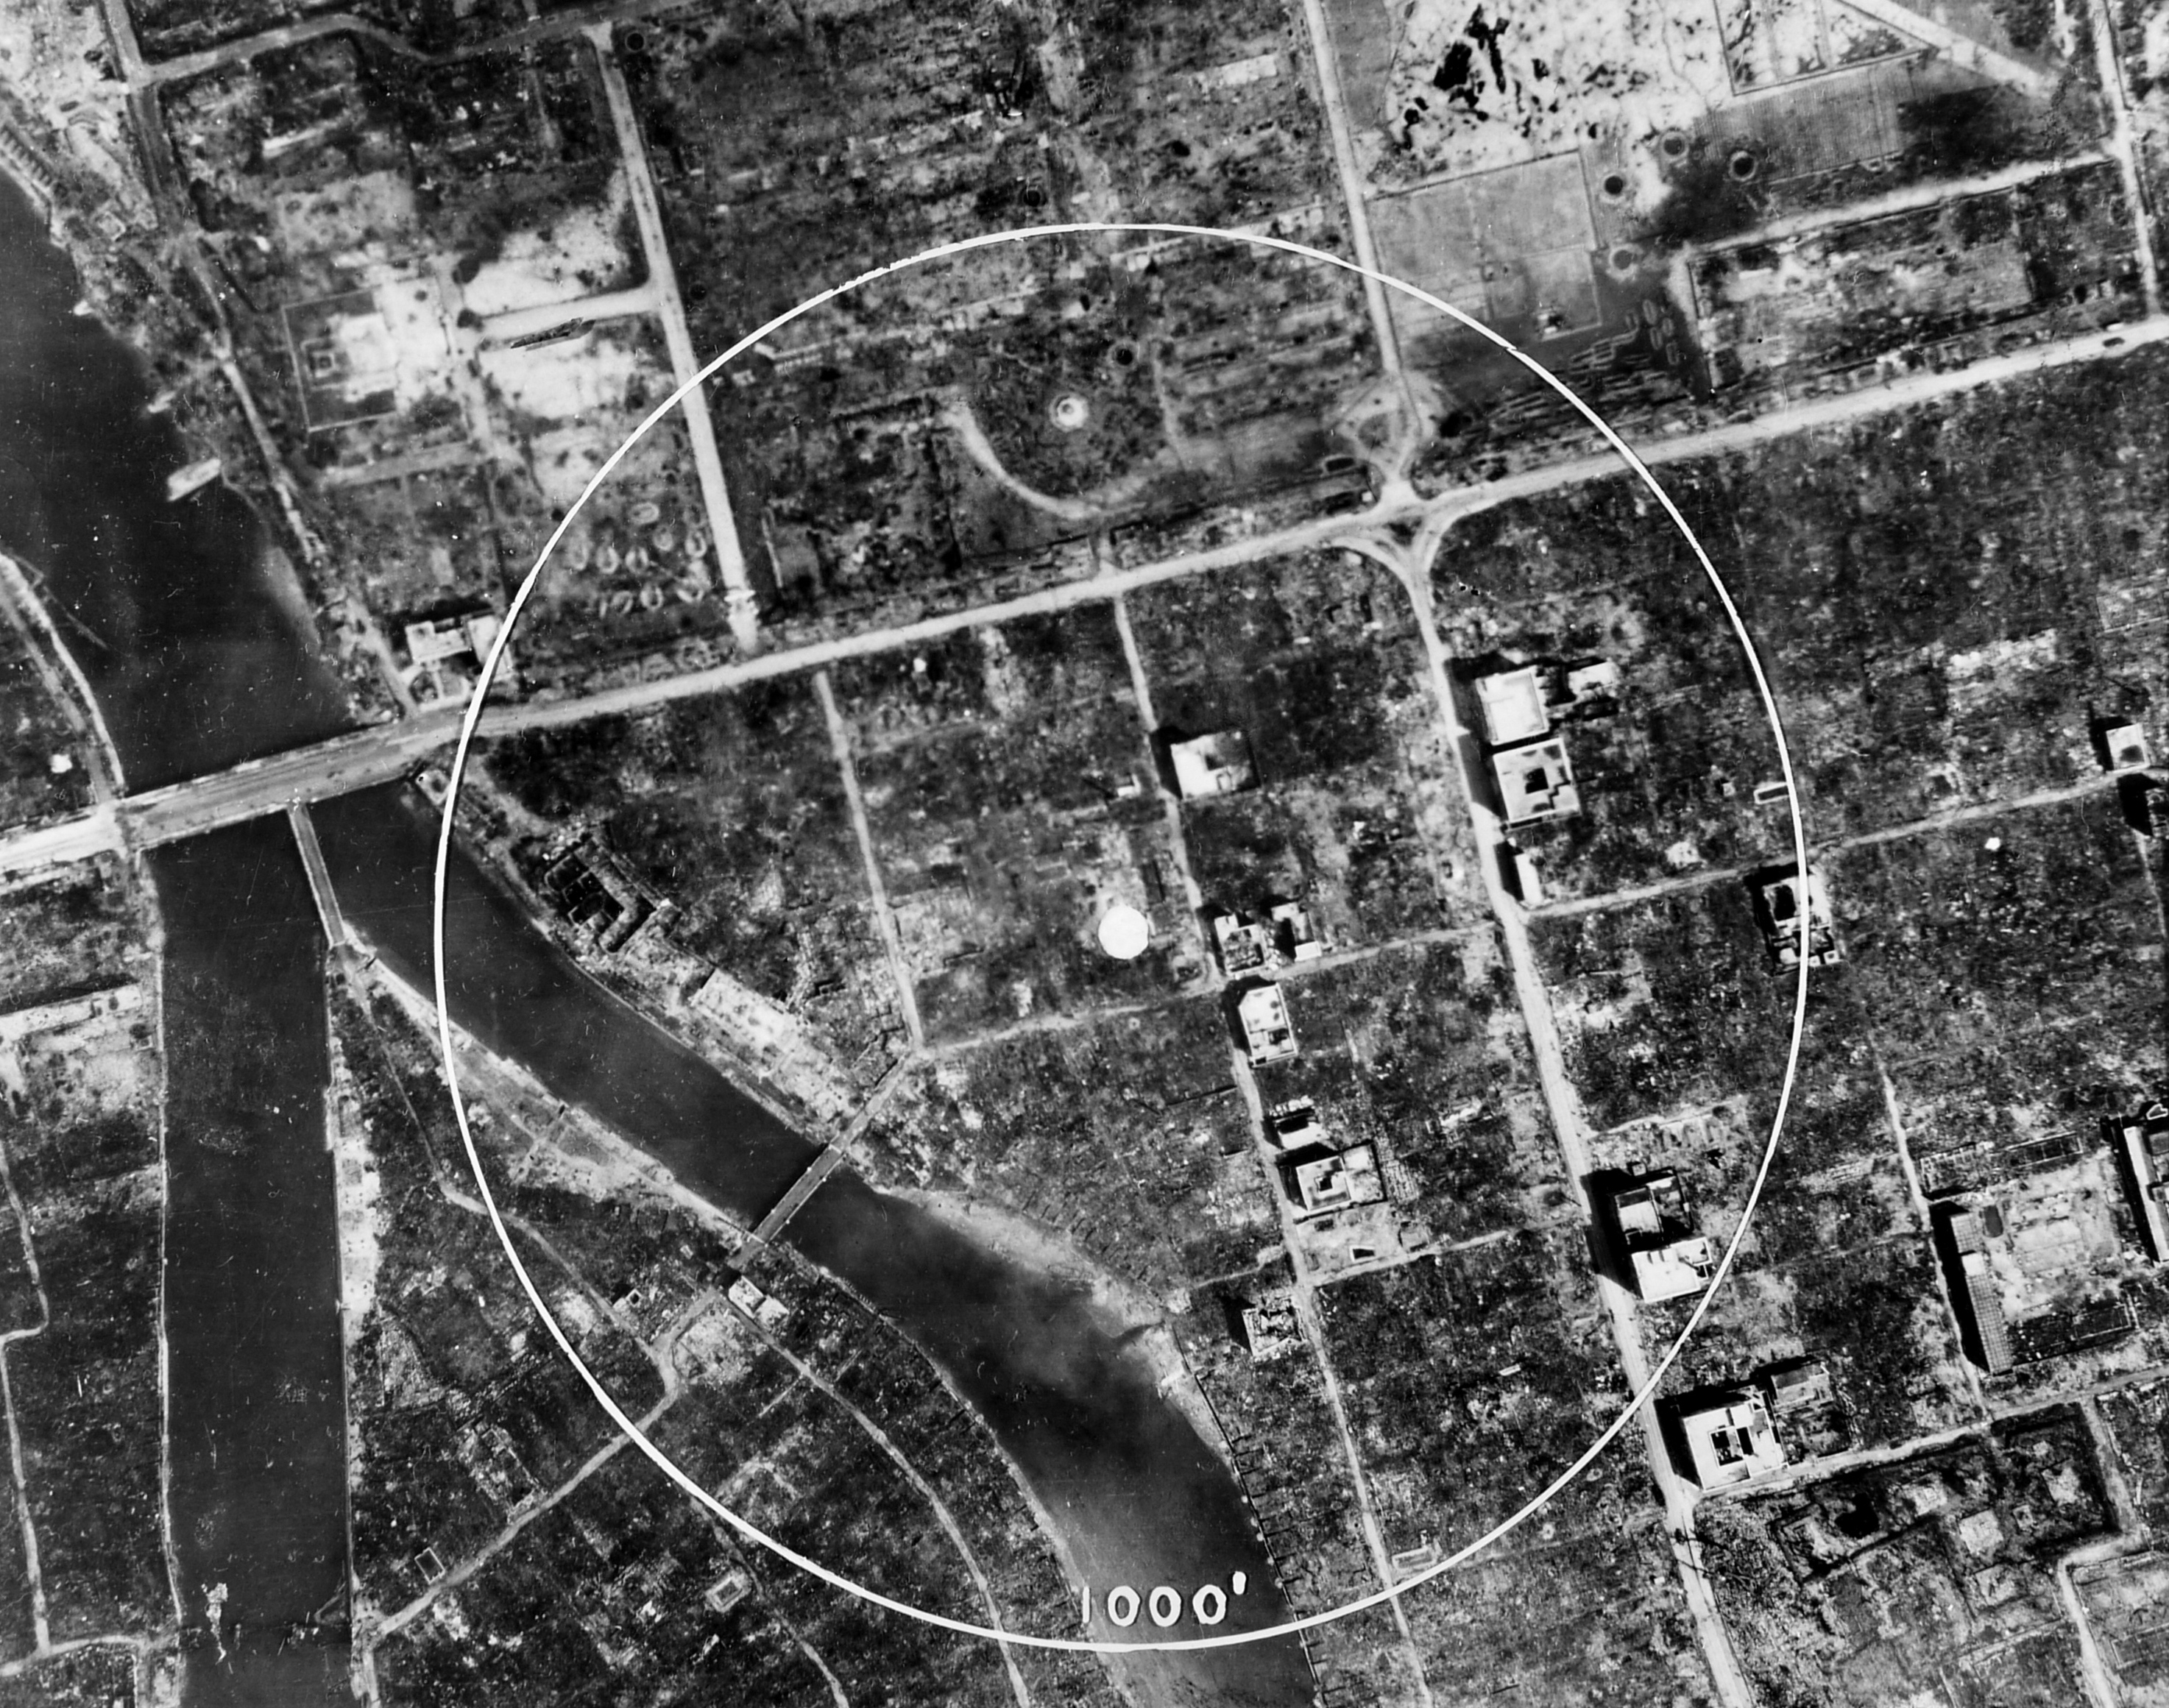 bombings of hiroshima and nagasaki essay Rosenberg, jennifer the atomic bombing of hiroshima and nagasaki thoughtco, mar 8, 2017, thoughtcocom/atomic-bombing-hiroshima-and-nagasaki-1779992.